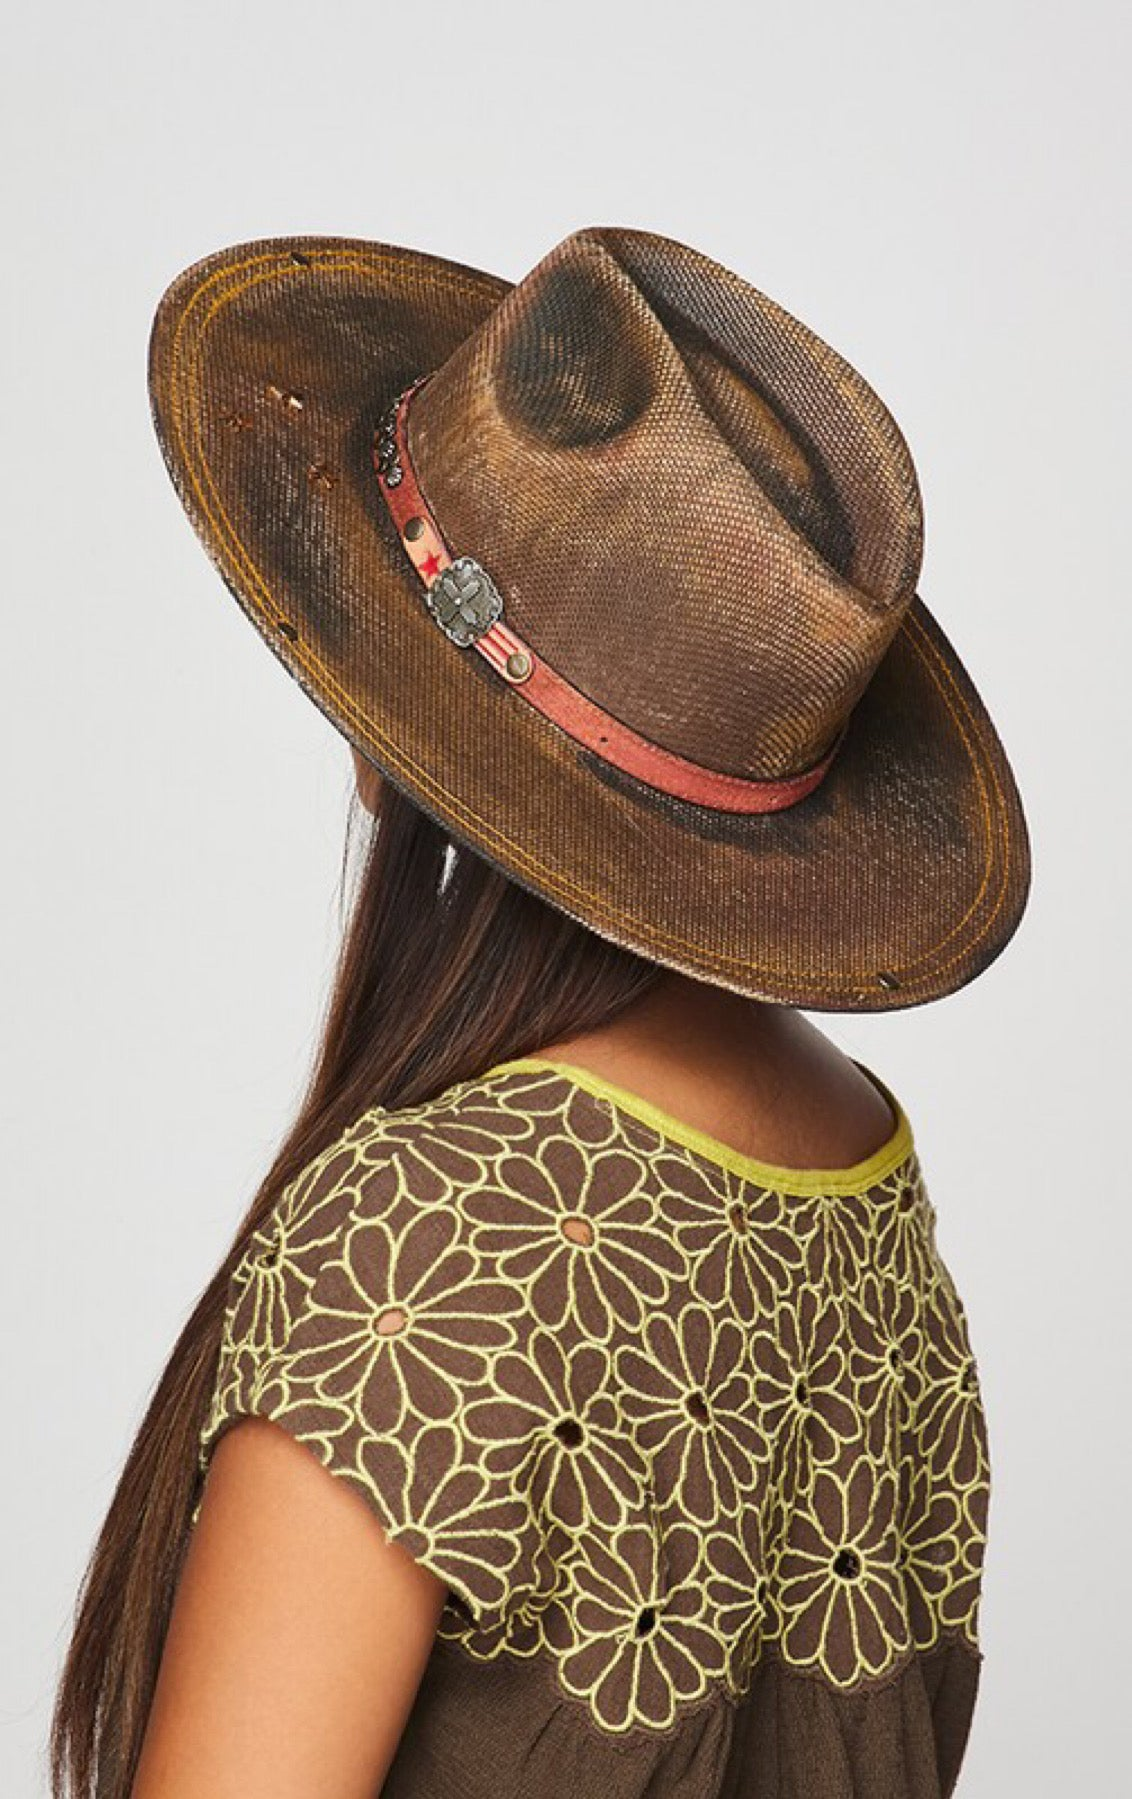 The Belle Starr Hat